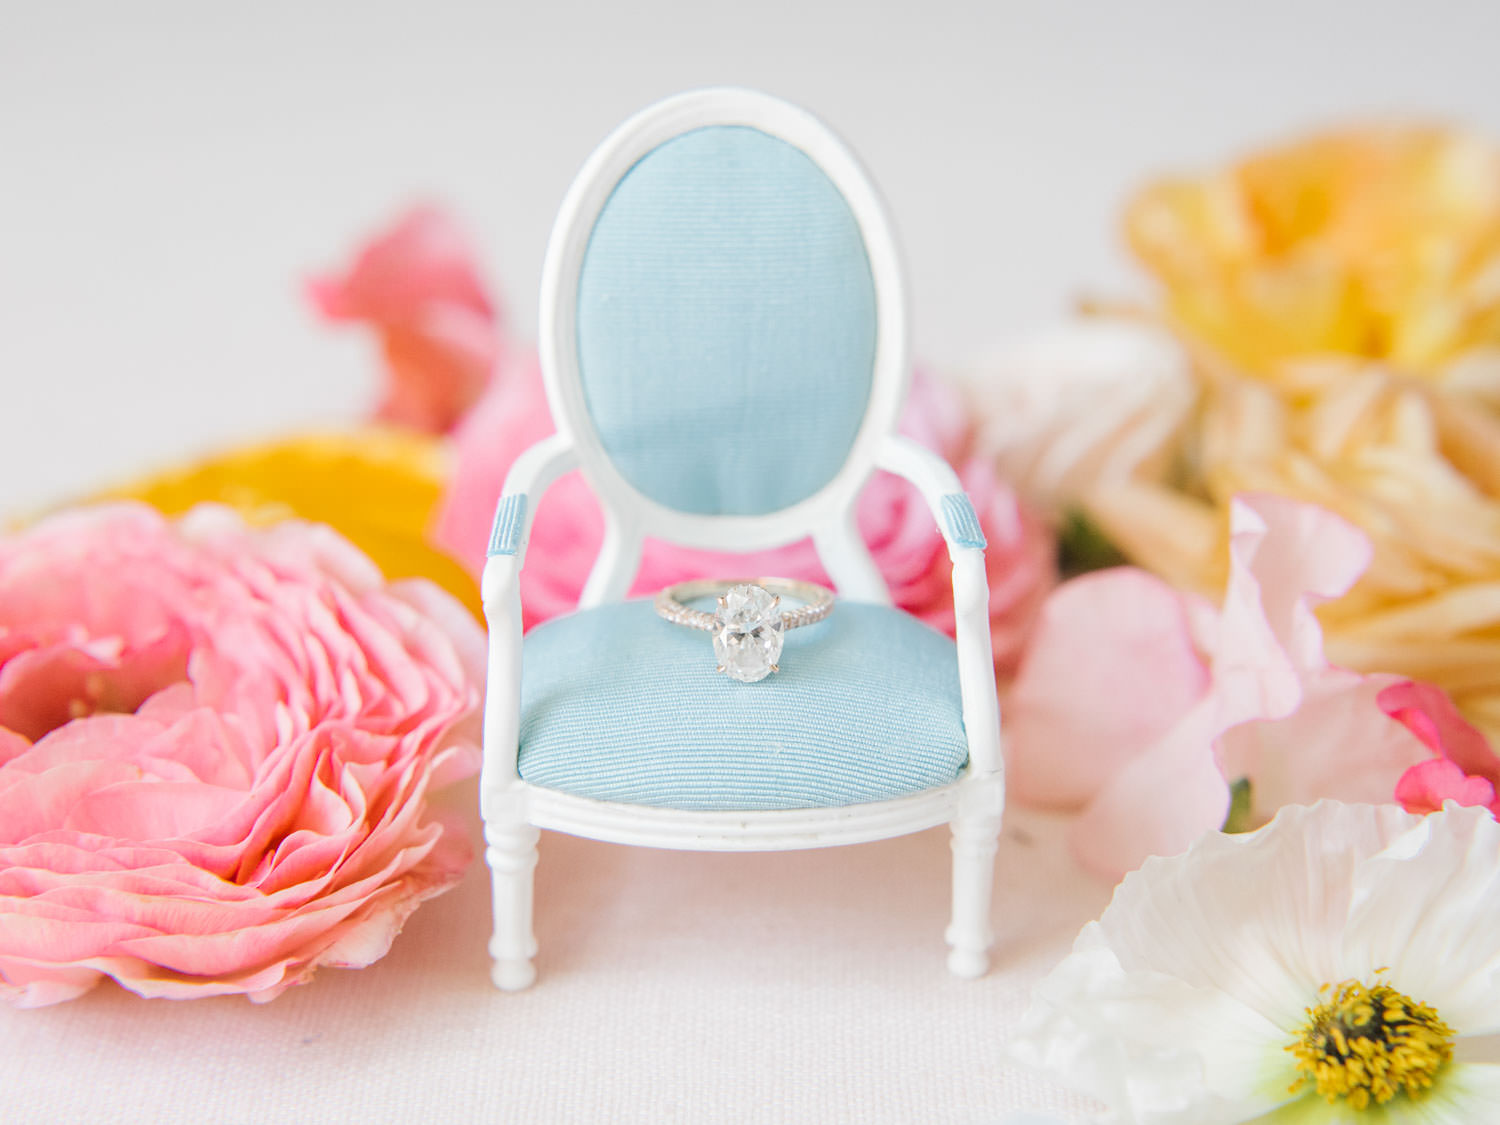 Bride's oval engagement ring on a miniature blue oak louis armchair styled with dried fruits, and fresh pink flowers. Fairmont Grand del Mar wedding published on Martha Stewart Weddings